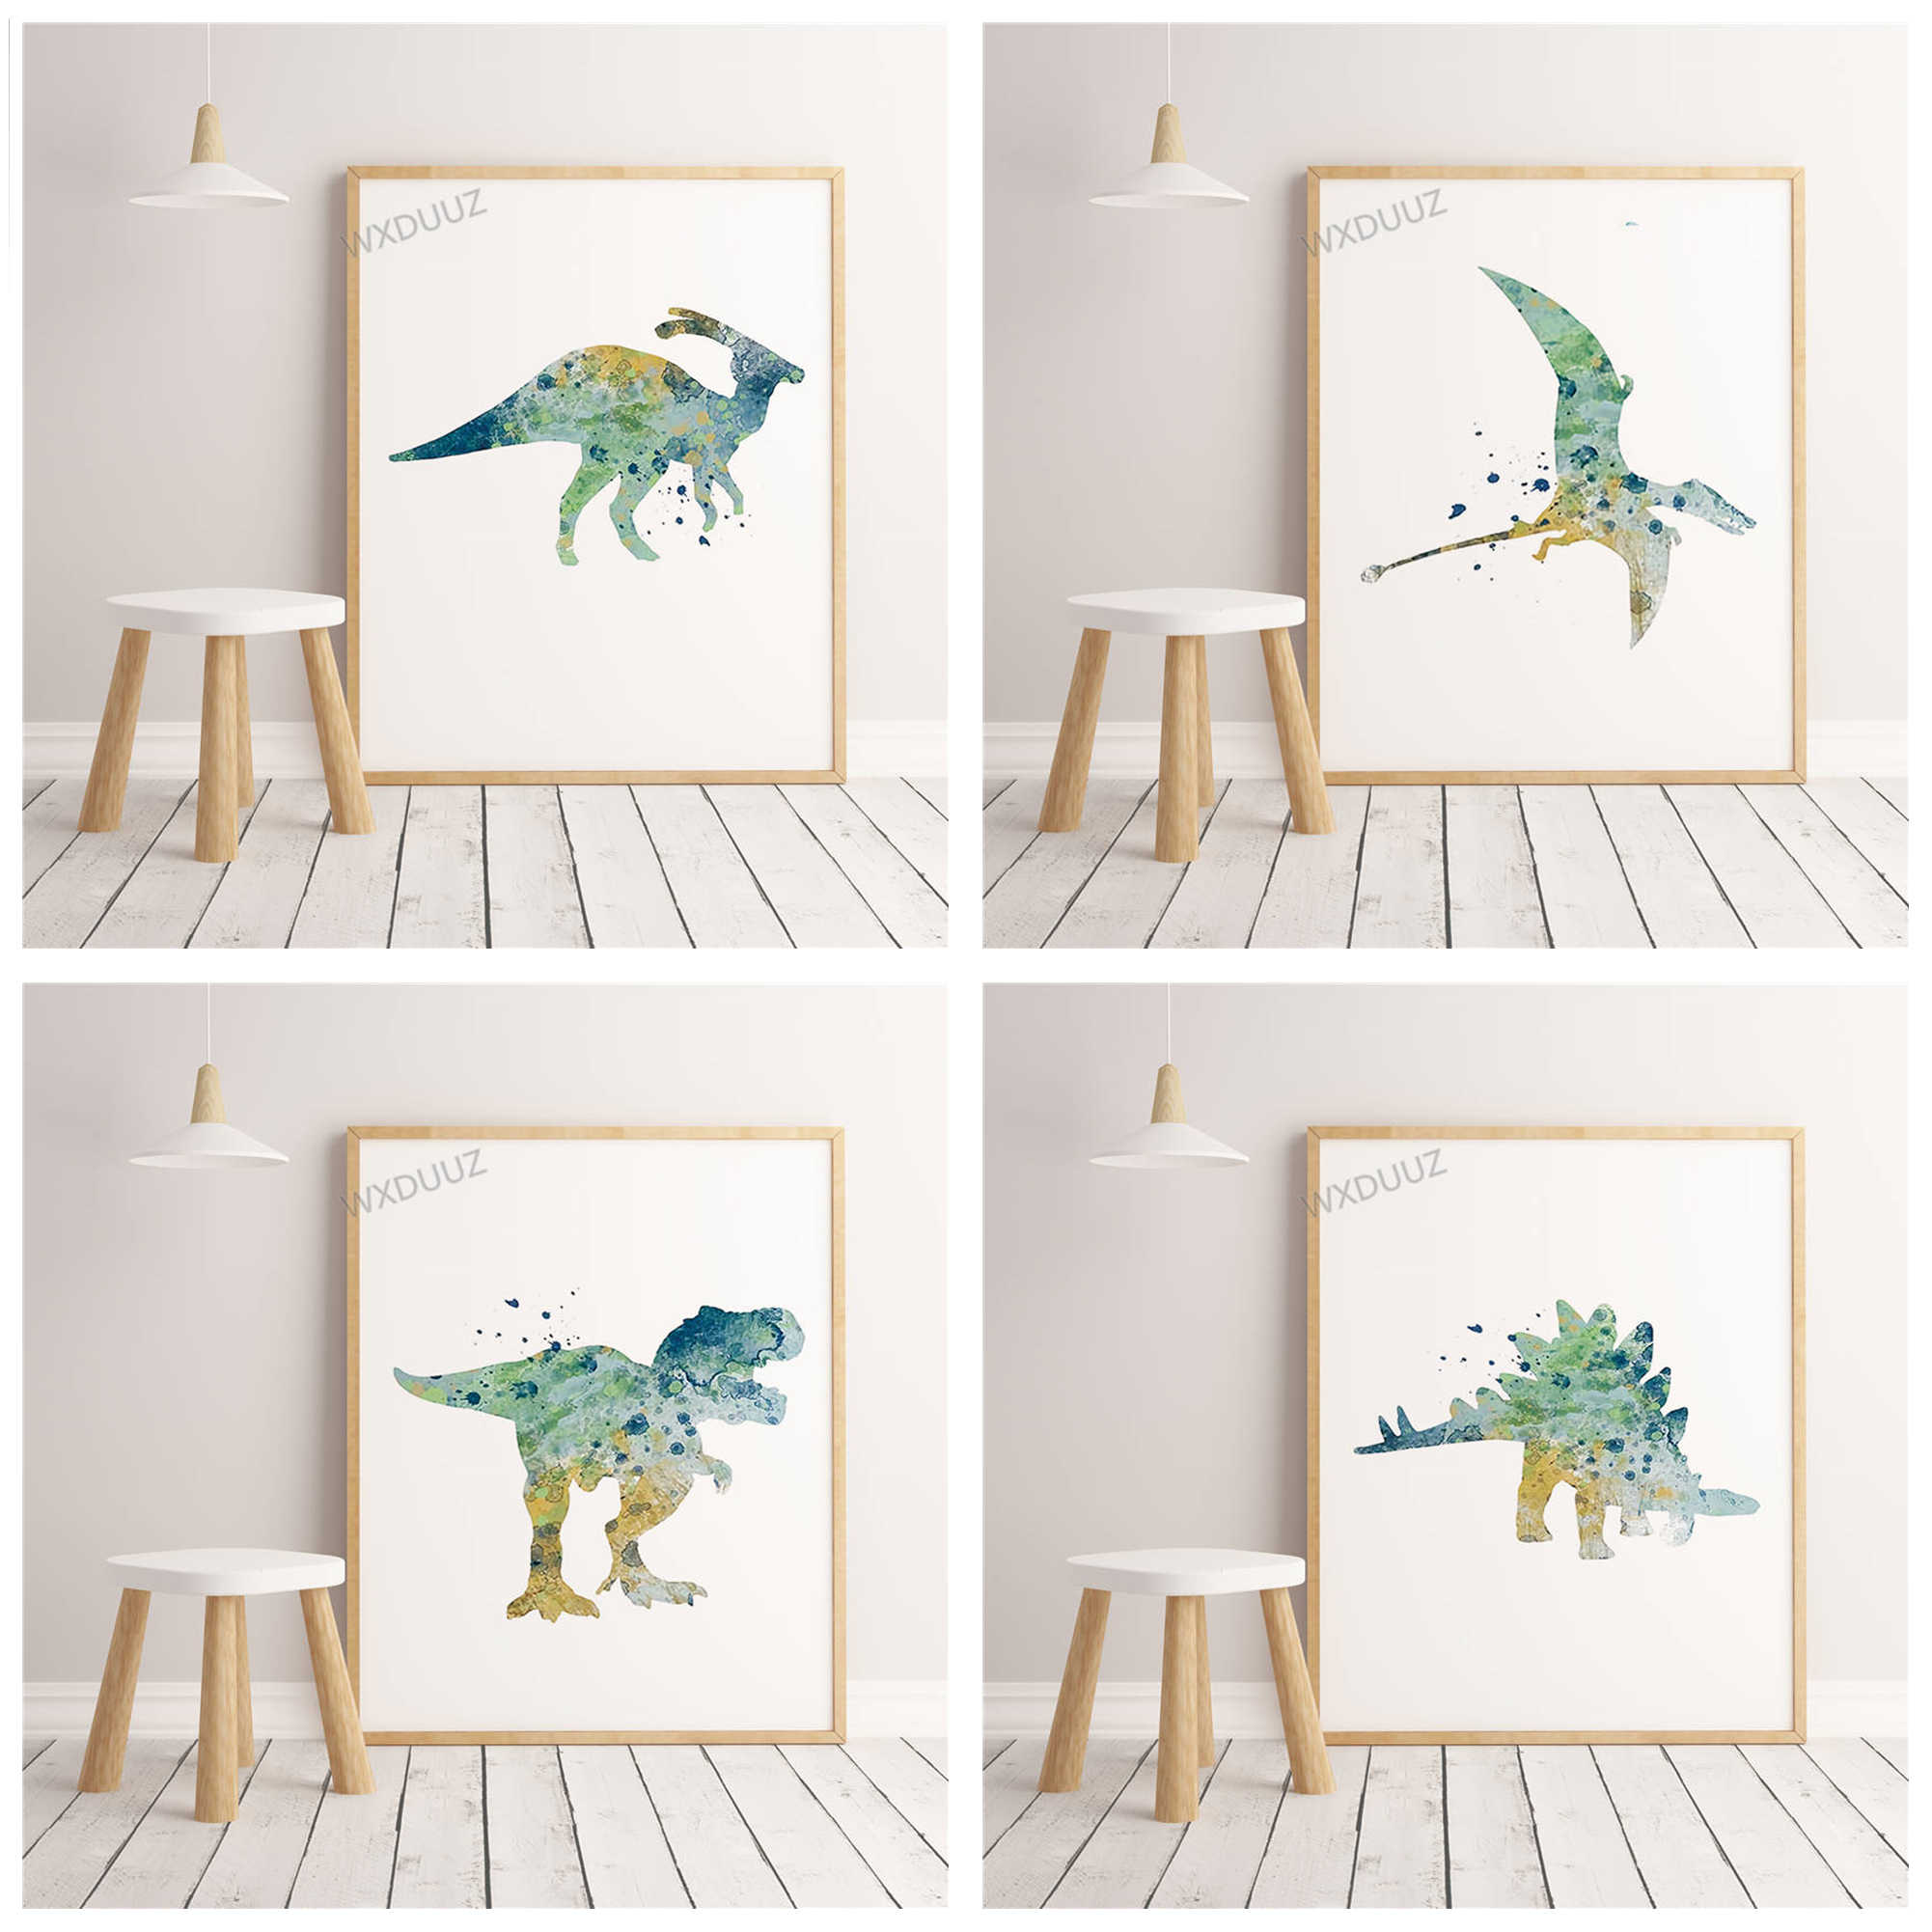 Watercolor Nordic Style Decorative Cartoon Animal Poster Dinosaur Children's Room Home Art Deco Picture canvas painting K334